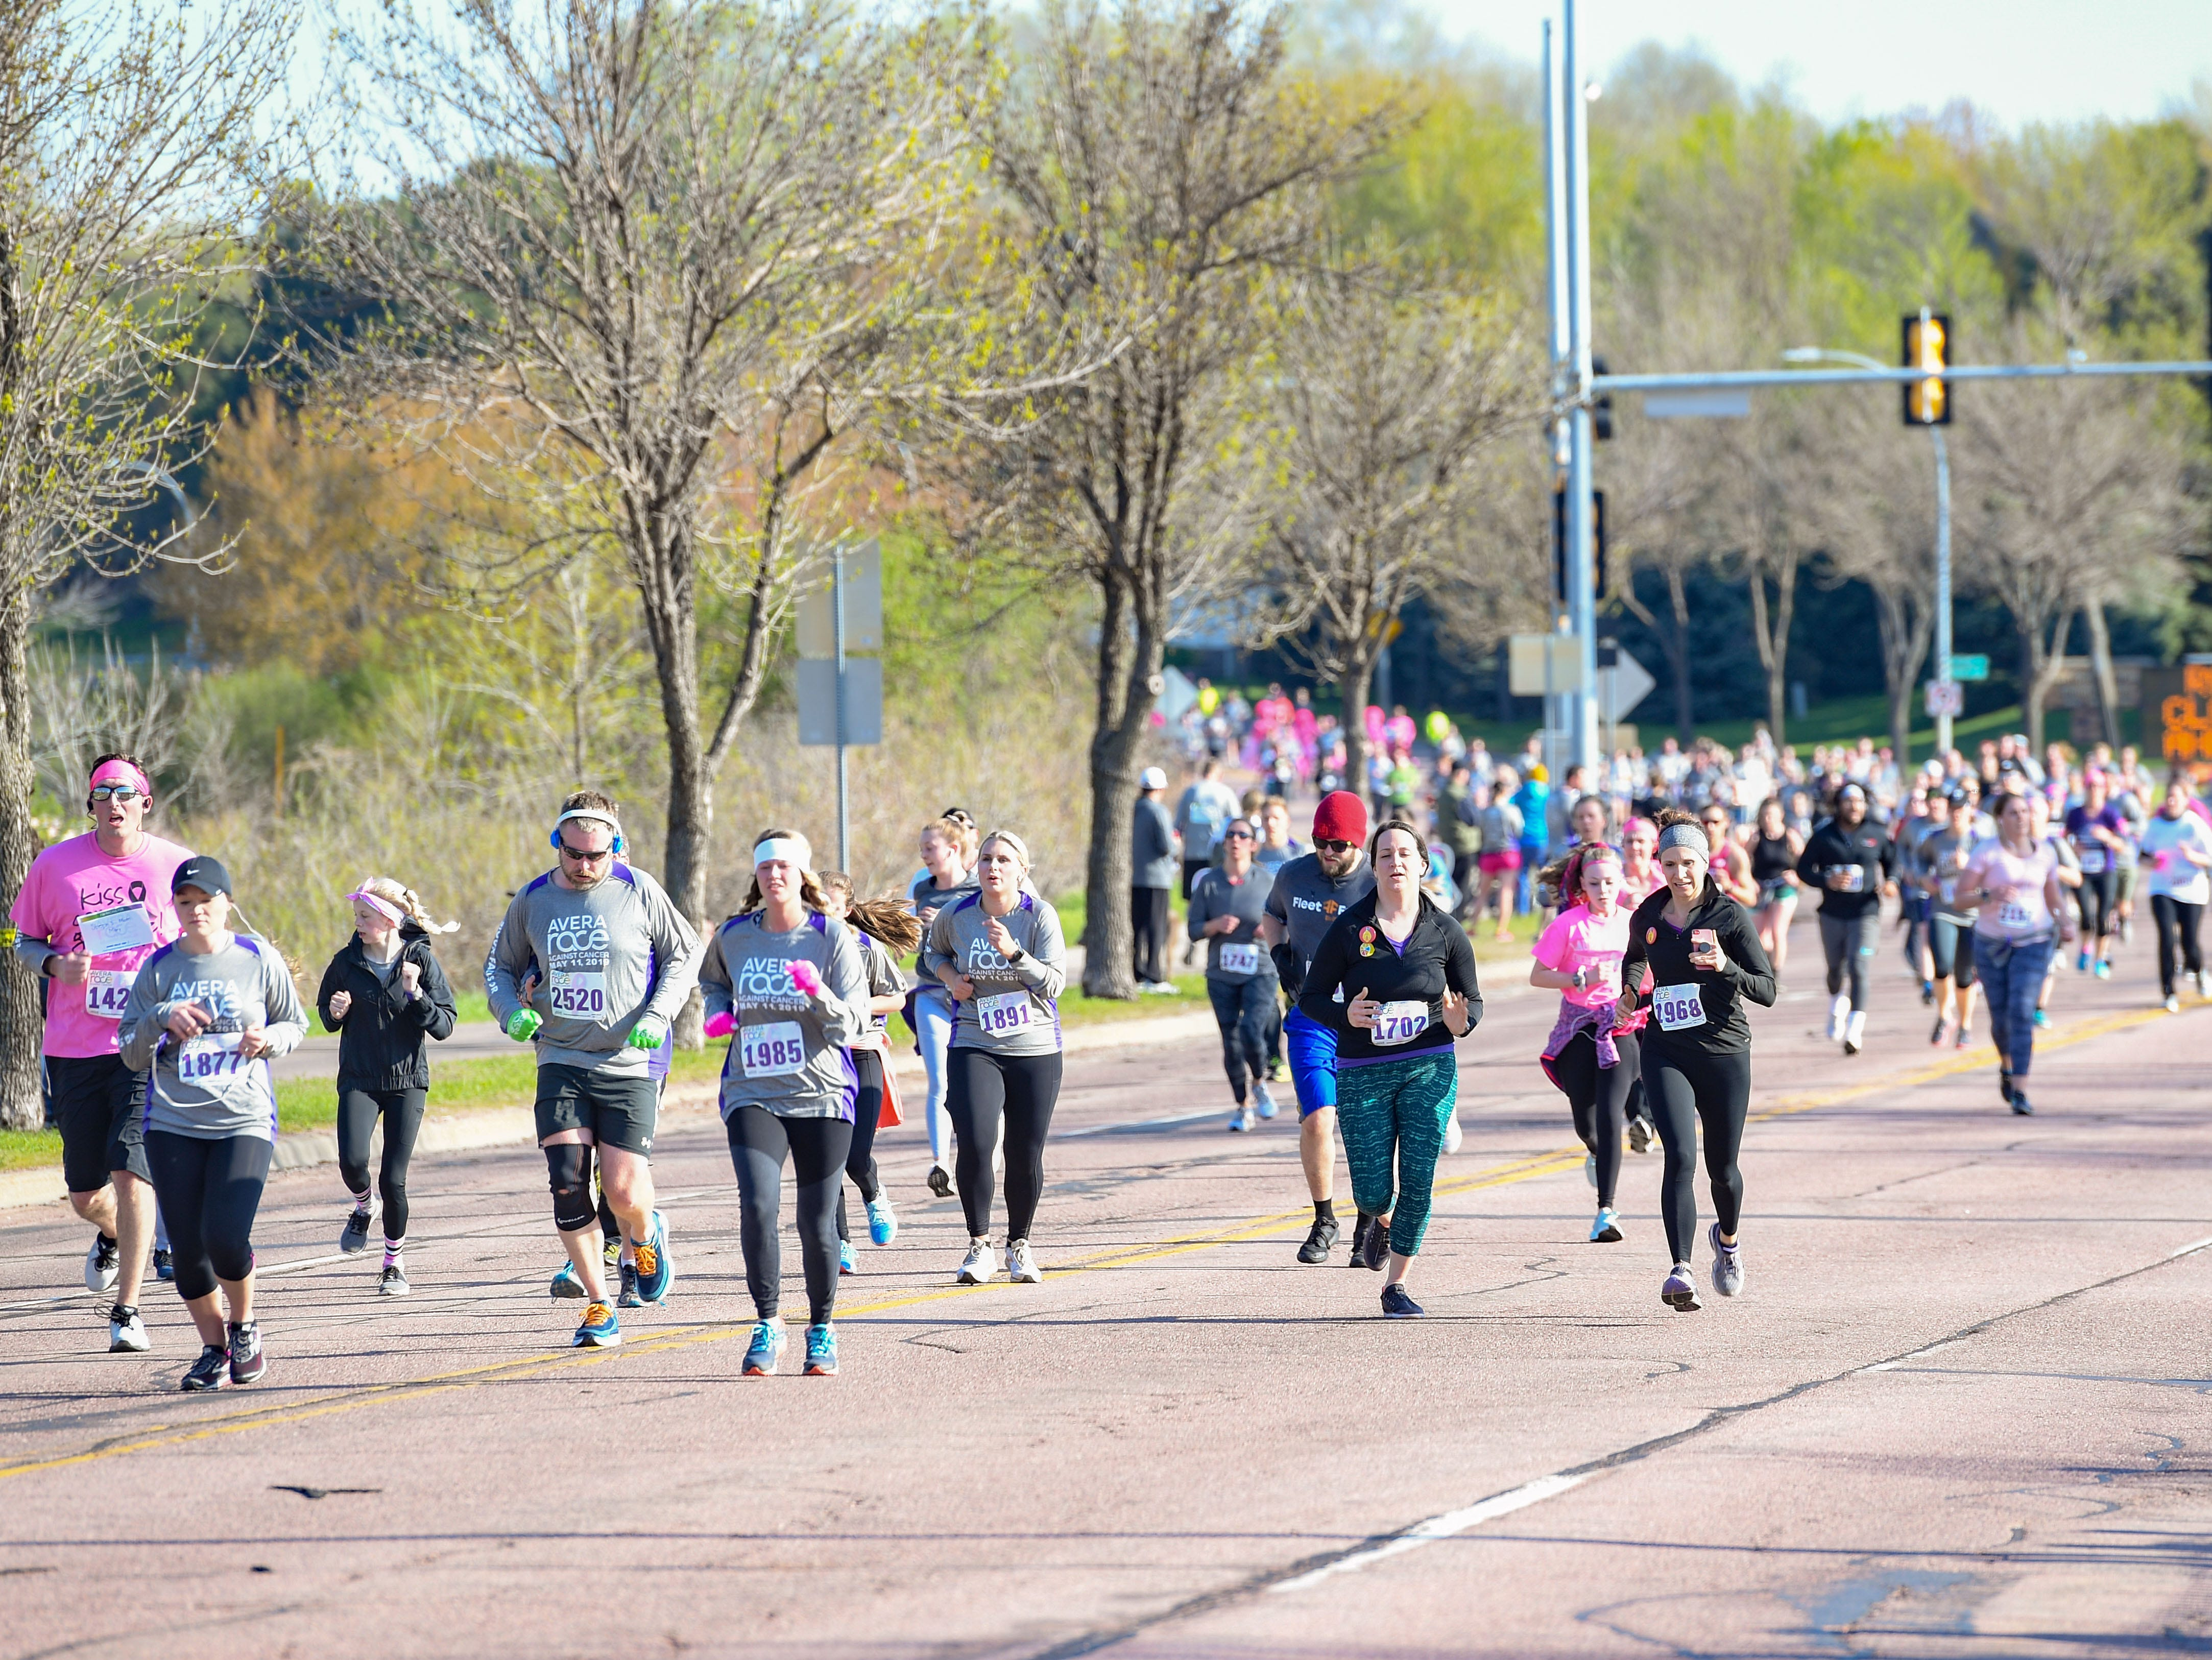 Runners make their way back to the finish line at the 31st Avera Health Race Against Cancer on Saturday morning, May 11, in Sioux Falls.